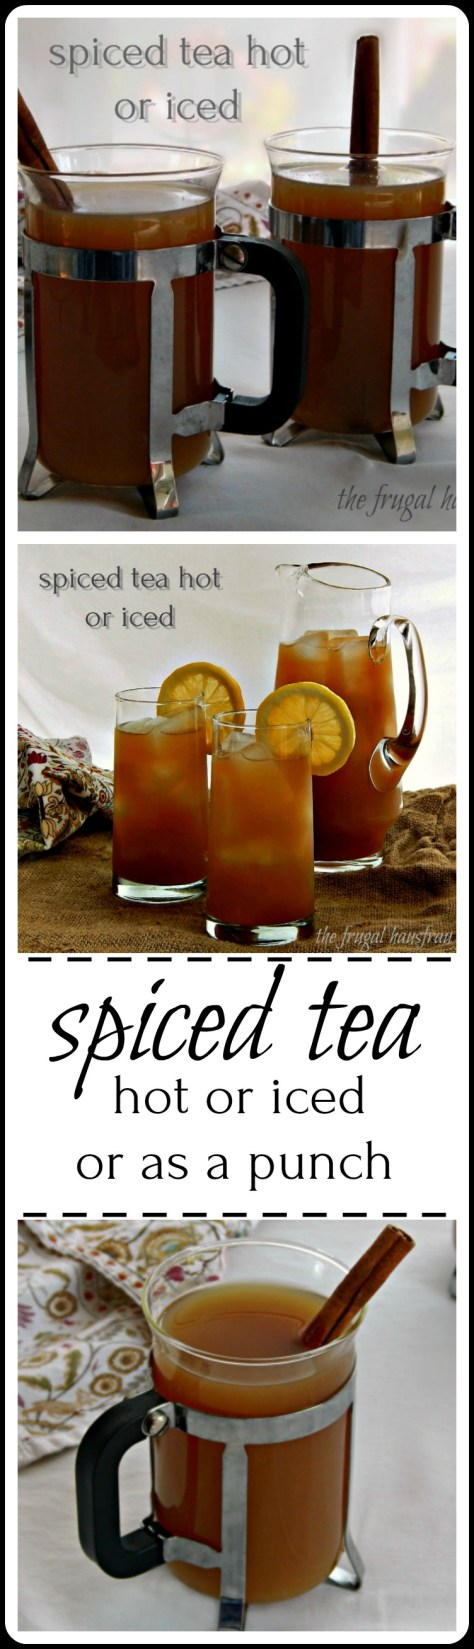 The Best!! Tea mixed with pineapple and pear, apple cider and citrus! Then a touch of cinnamon and clove. Everyone will go nuts over this!